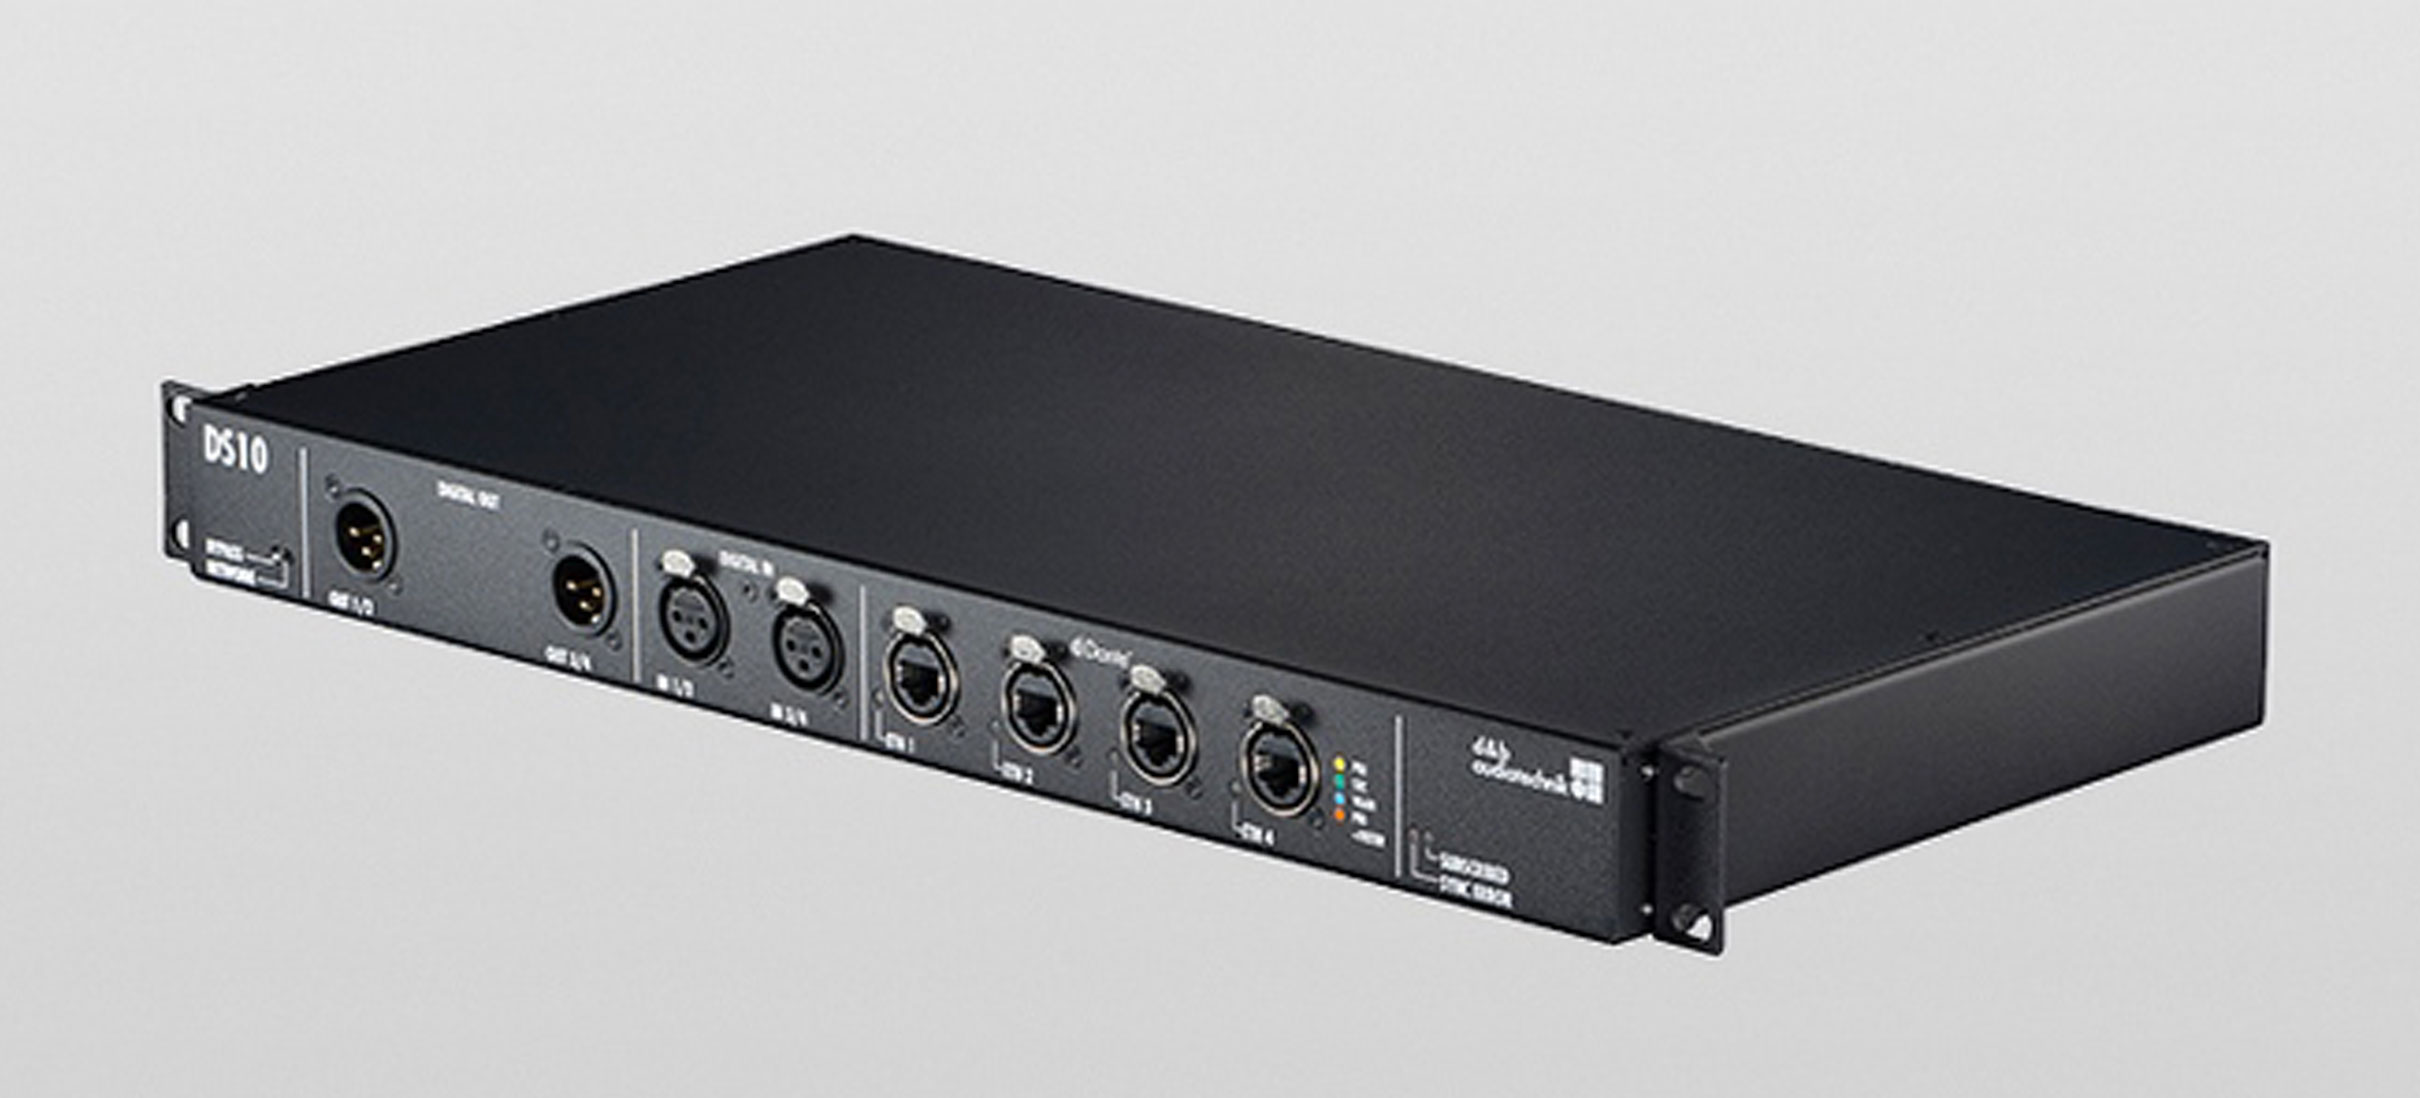 The next step in the d&b system approach: the DS10 Audio network bridge